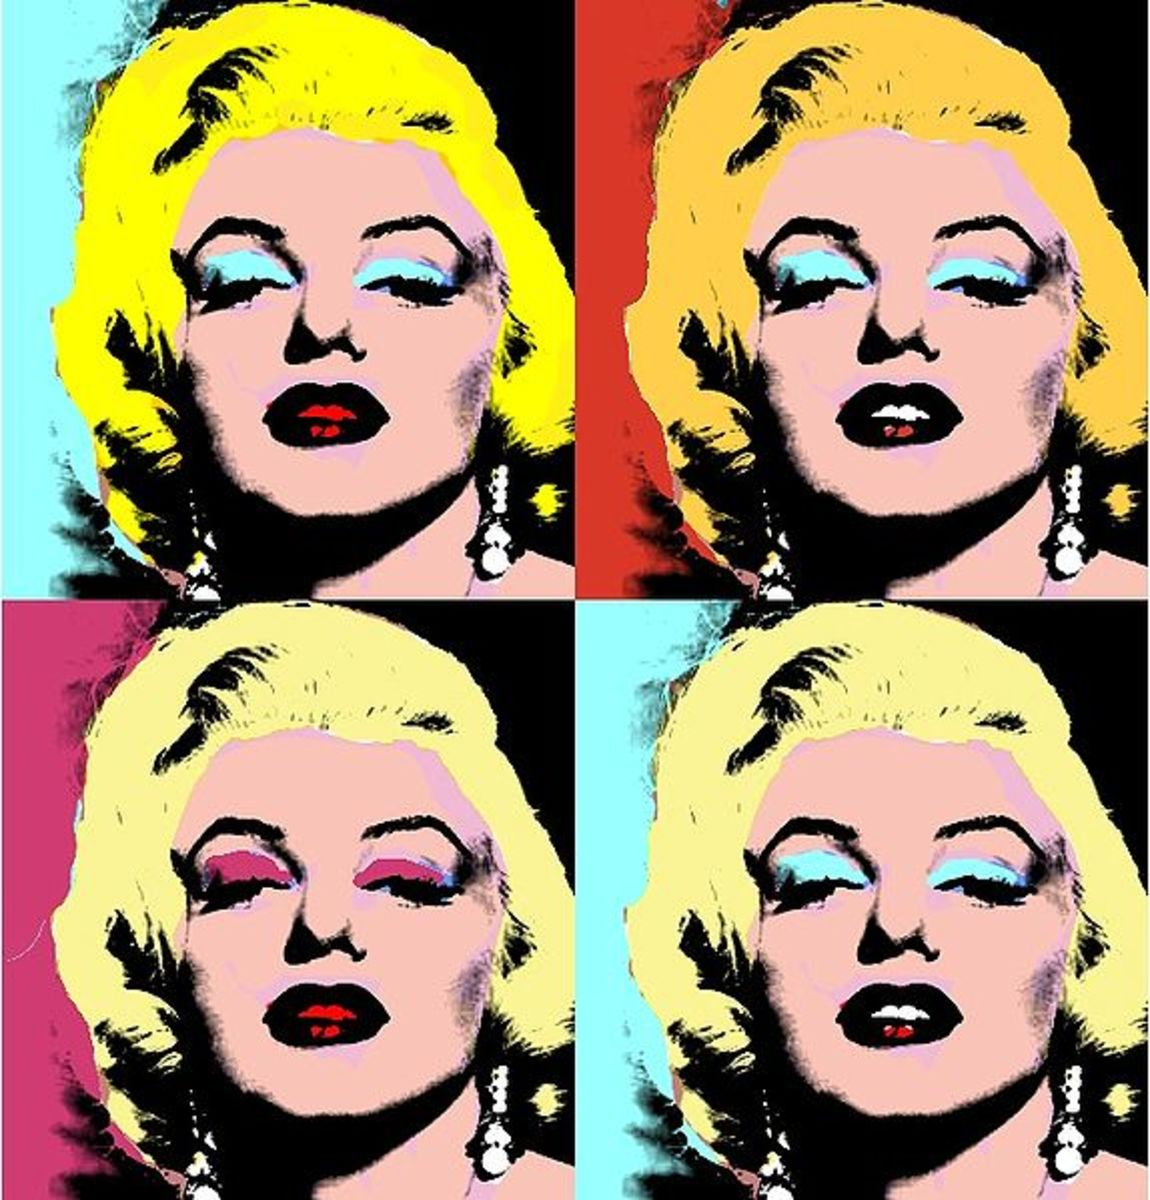 An image done in the style of Andy Warhol, who arguably extended and innovated the Pop Art movement.